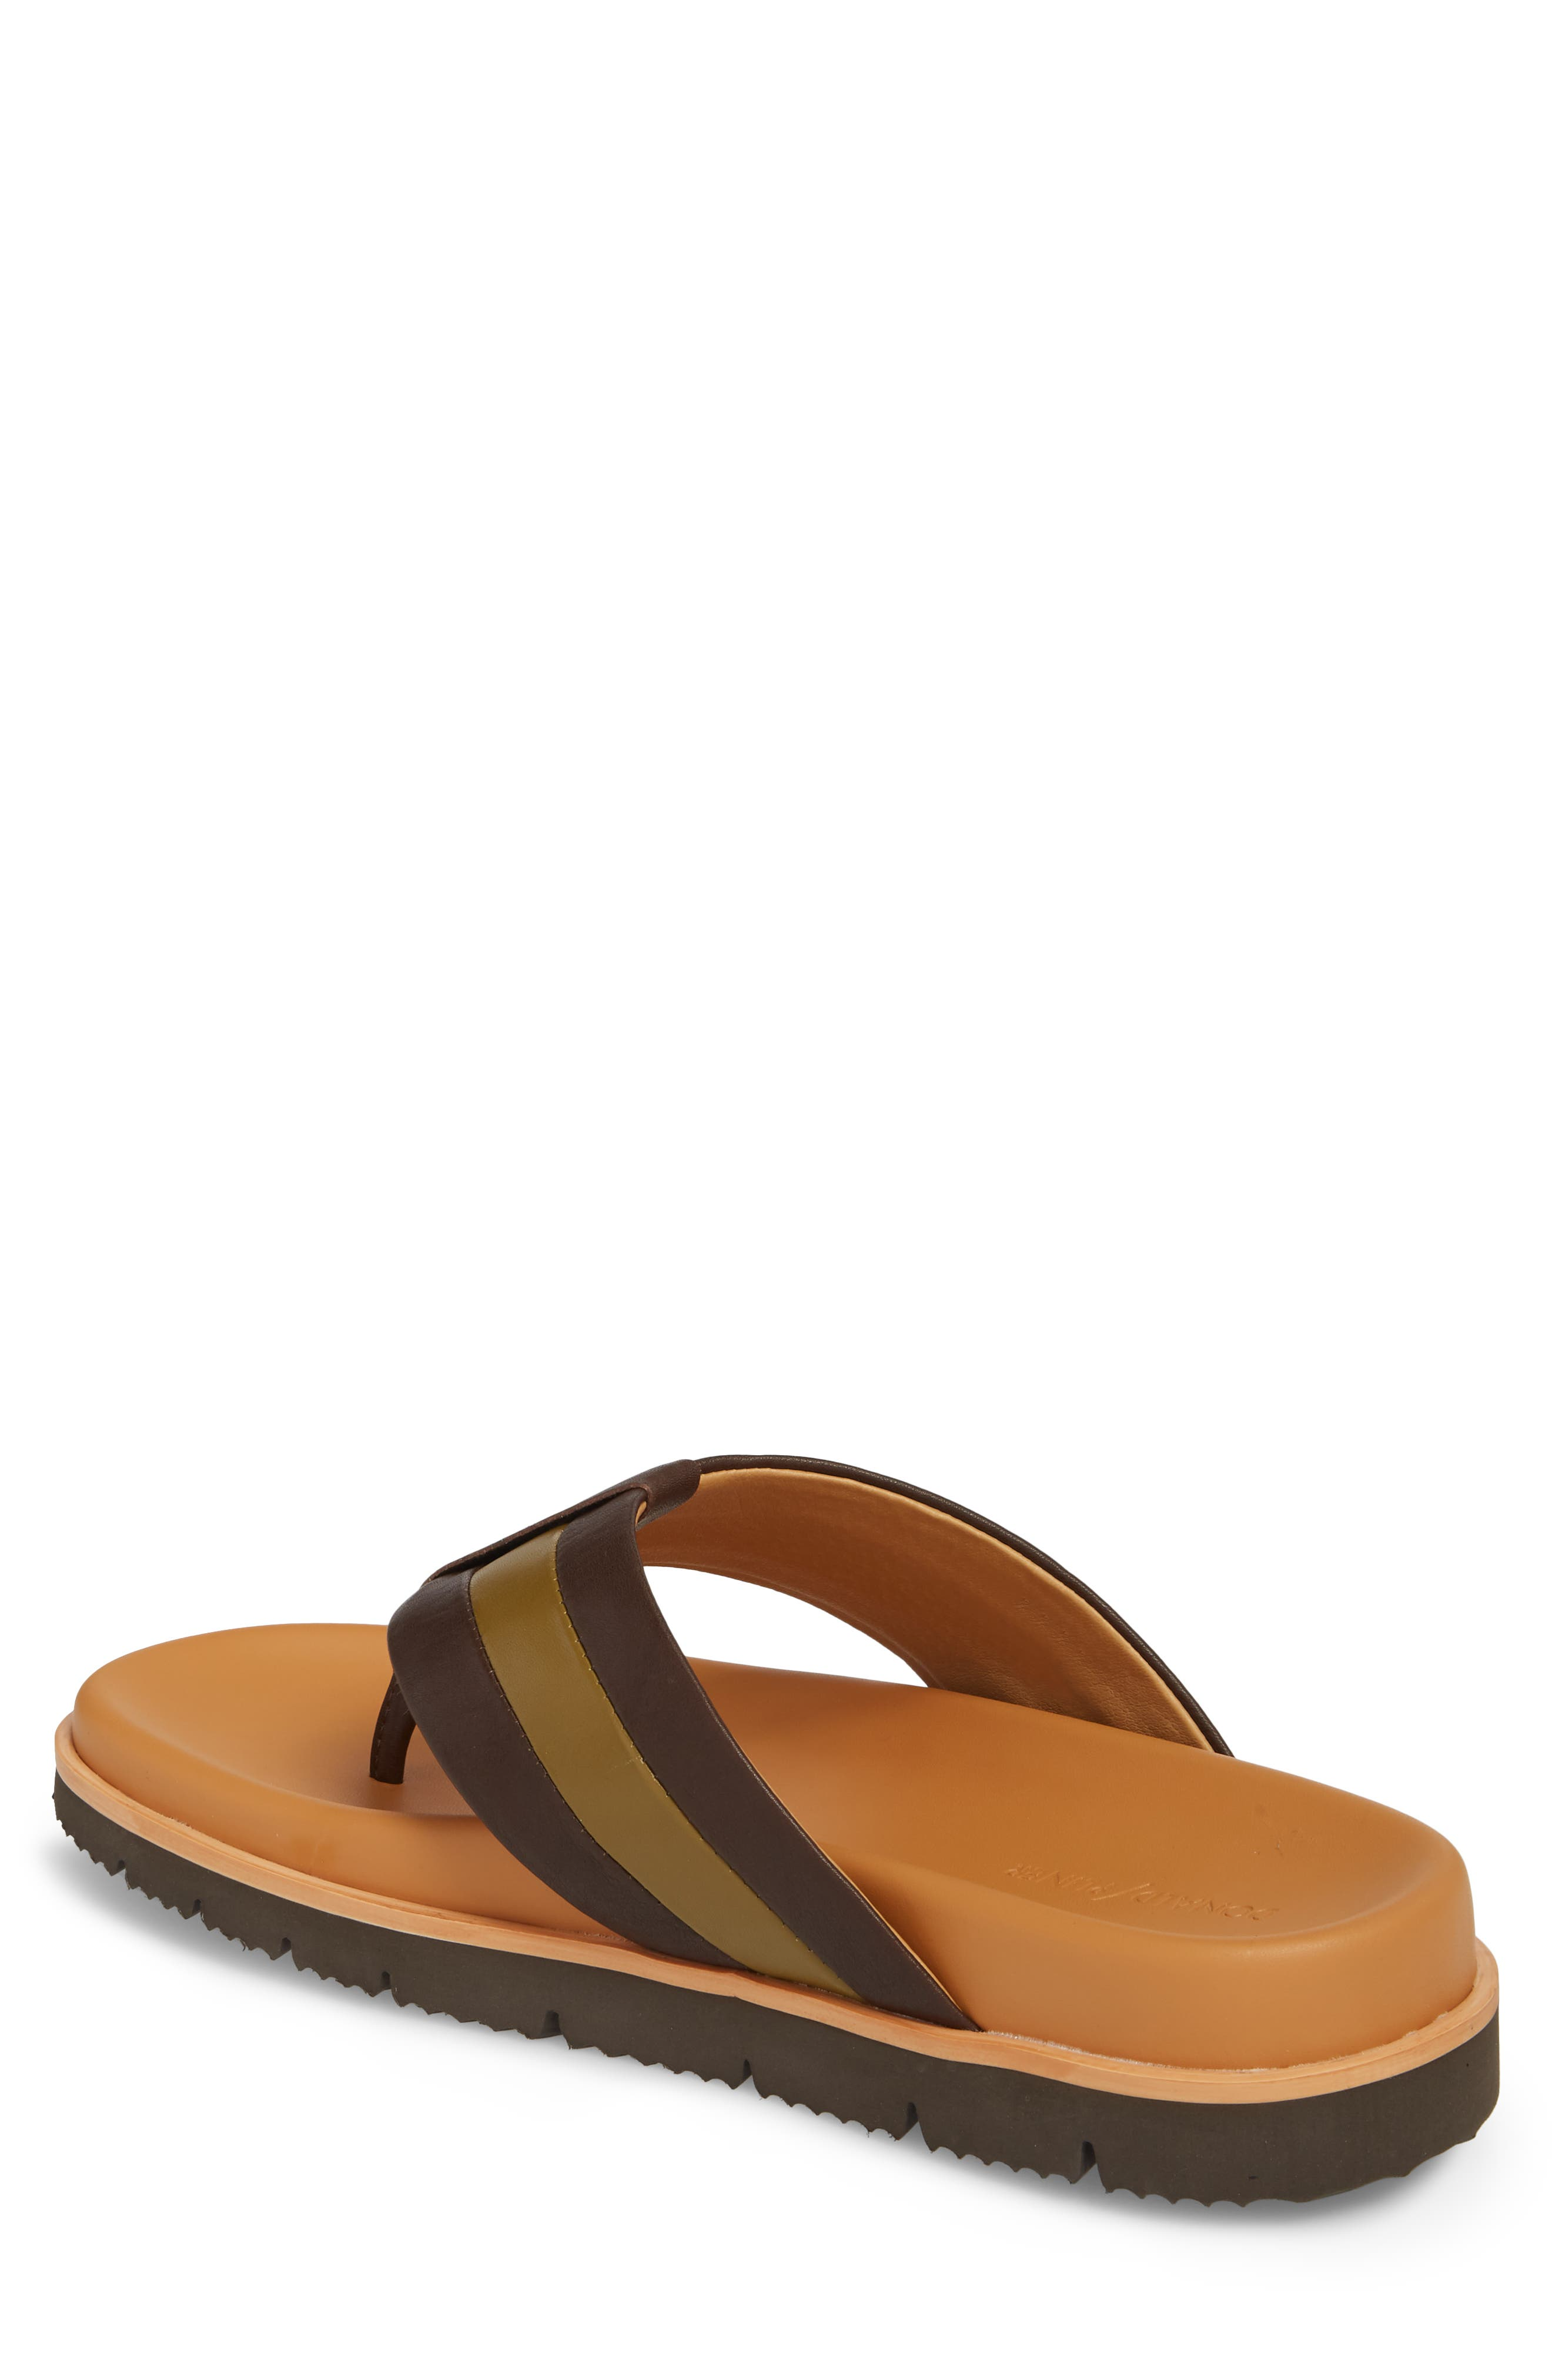 Bryce Striped Flip Flop,                             Alternate thumbnail 2, color,                             Brown/ Tan Leather